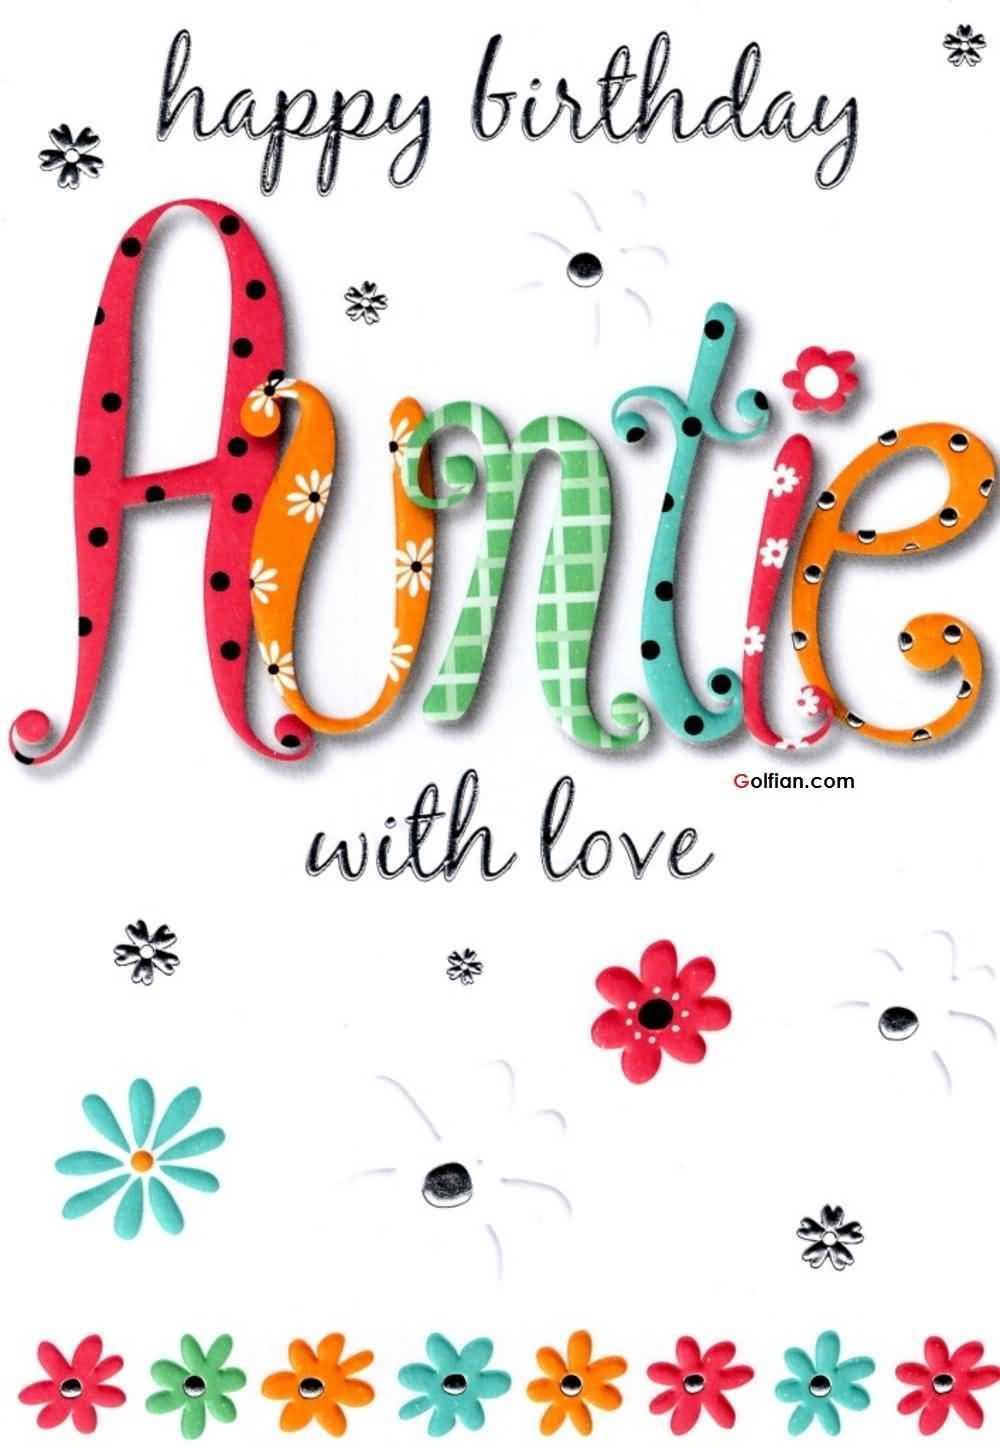 Amazing Happy Birthday Auntie With Love E Card Design